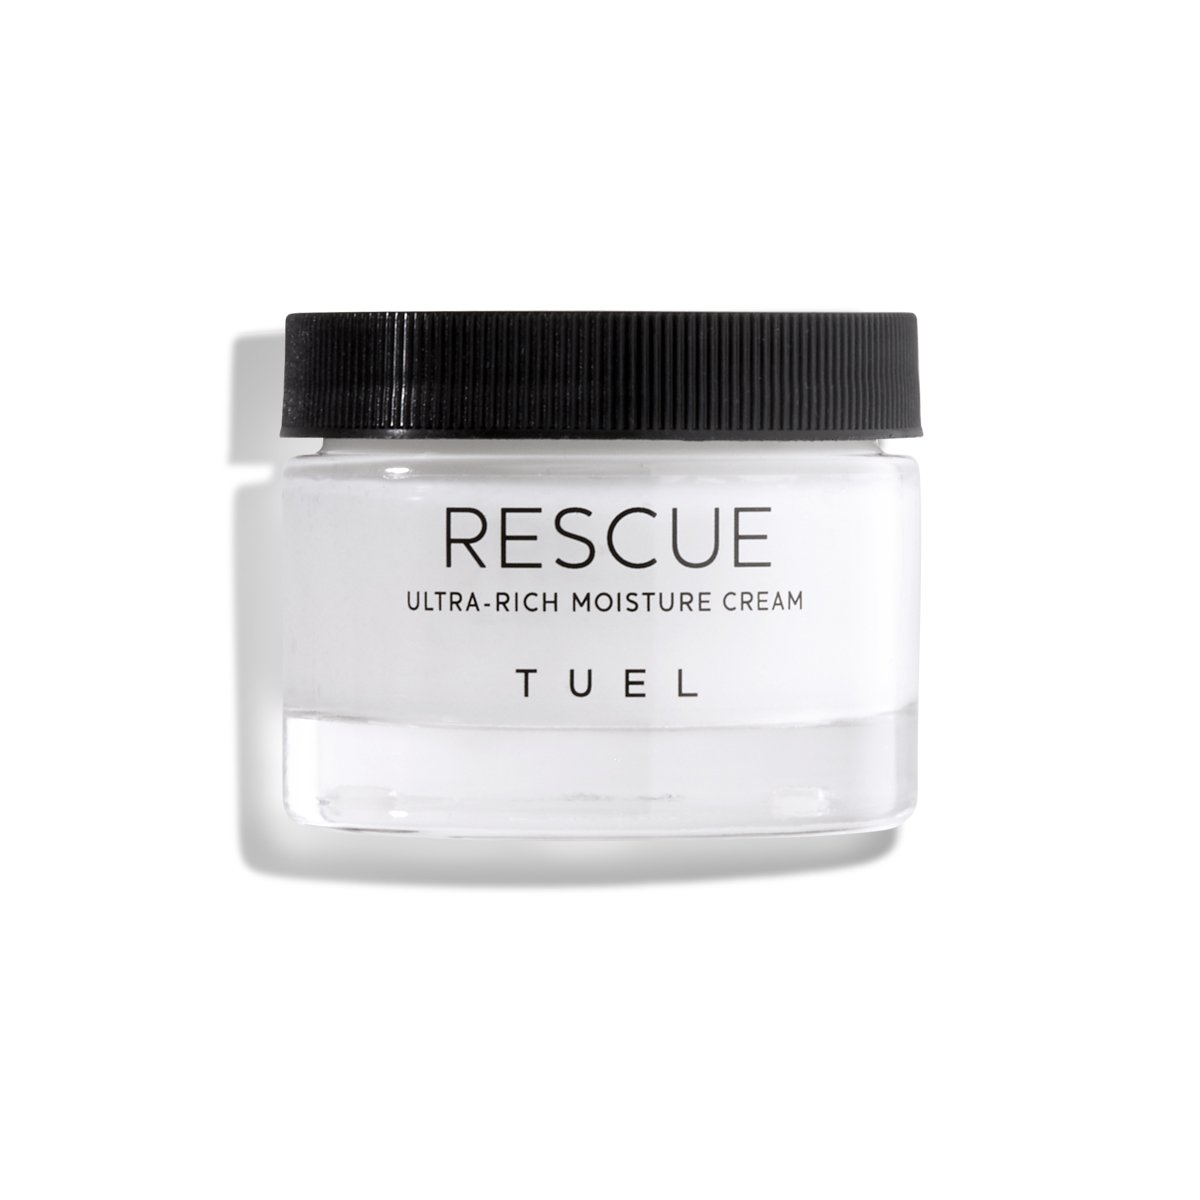 Rescue Ultra-Rich Moisture Cream